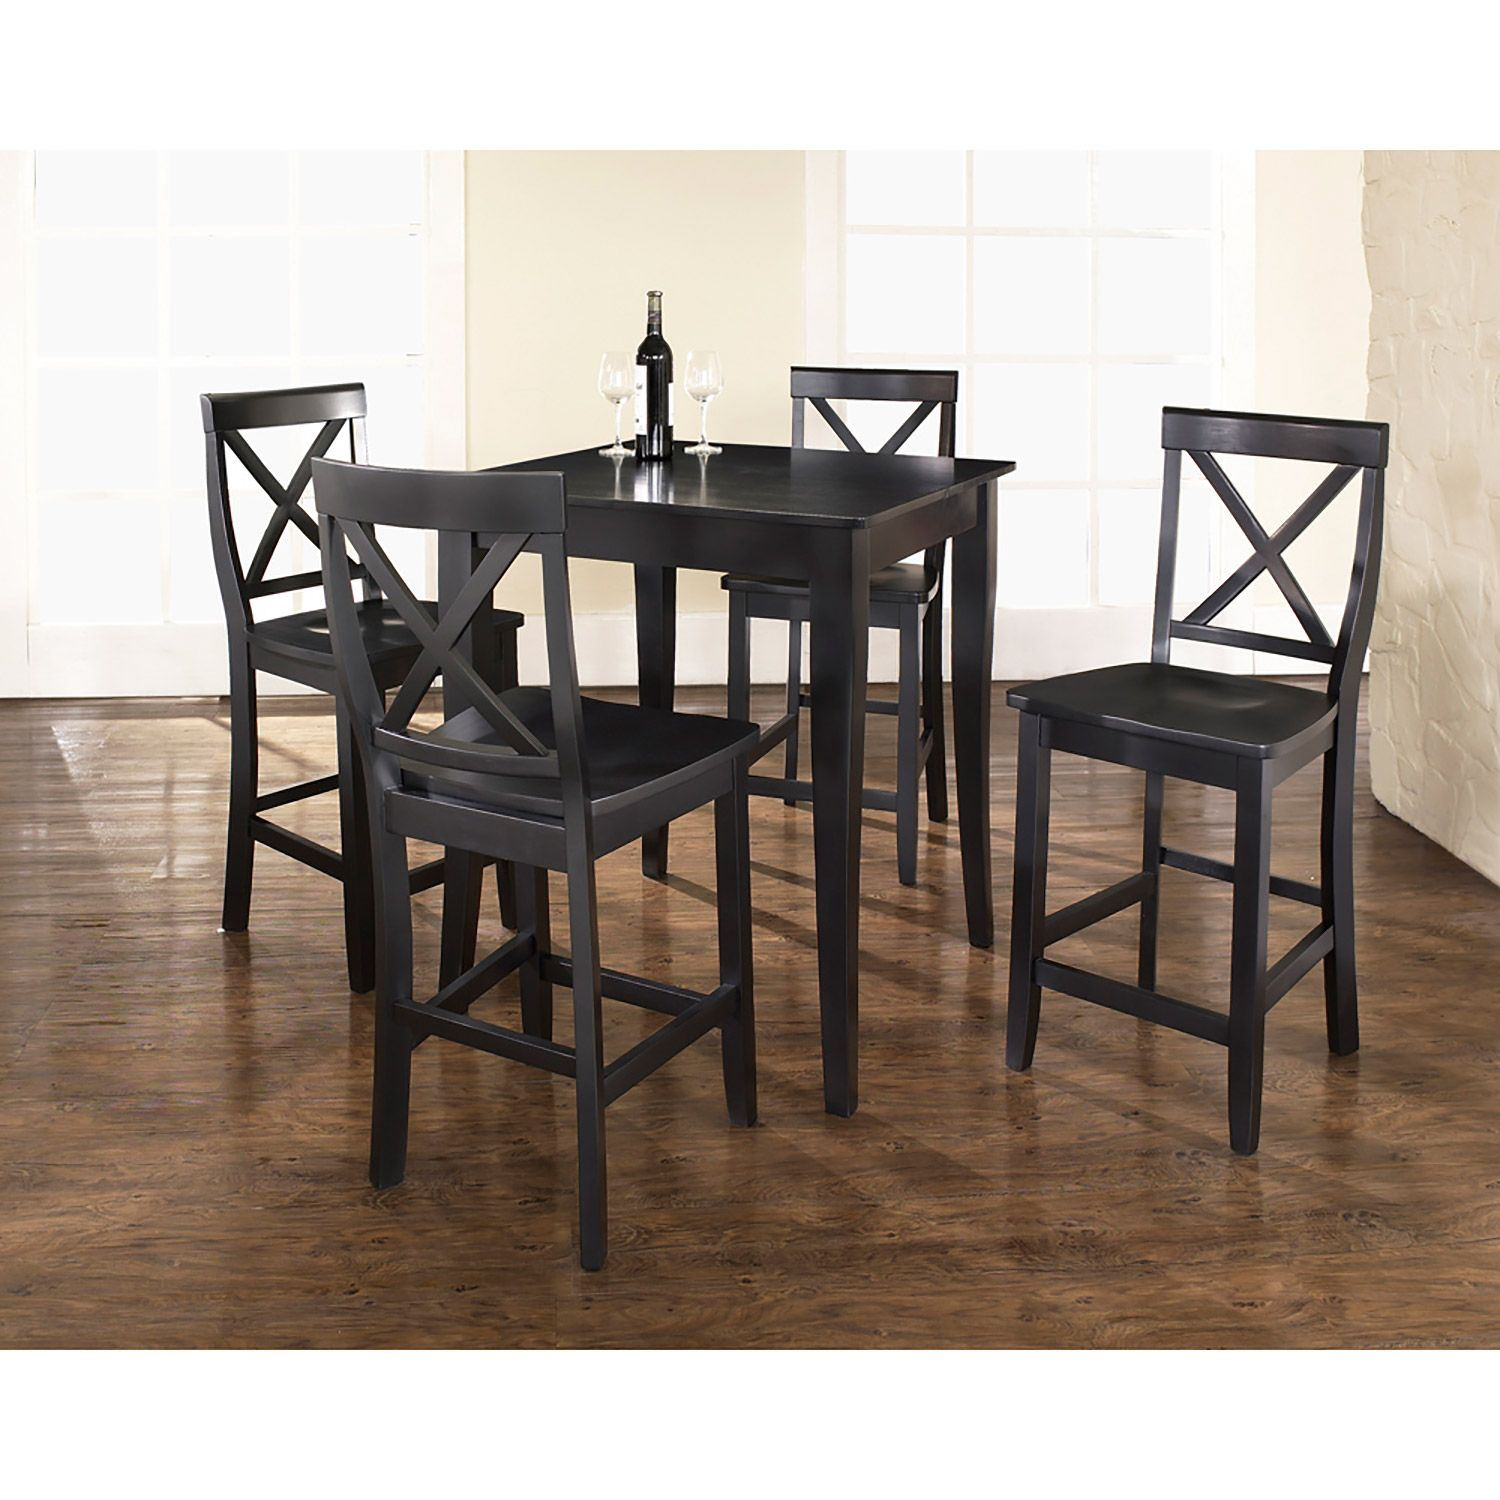 5-Piece Pub Dining Set, Black *D